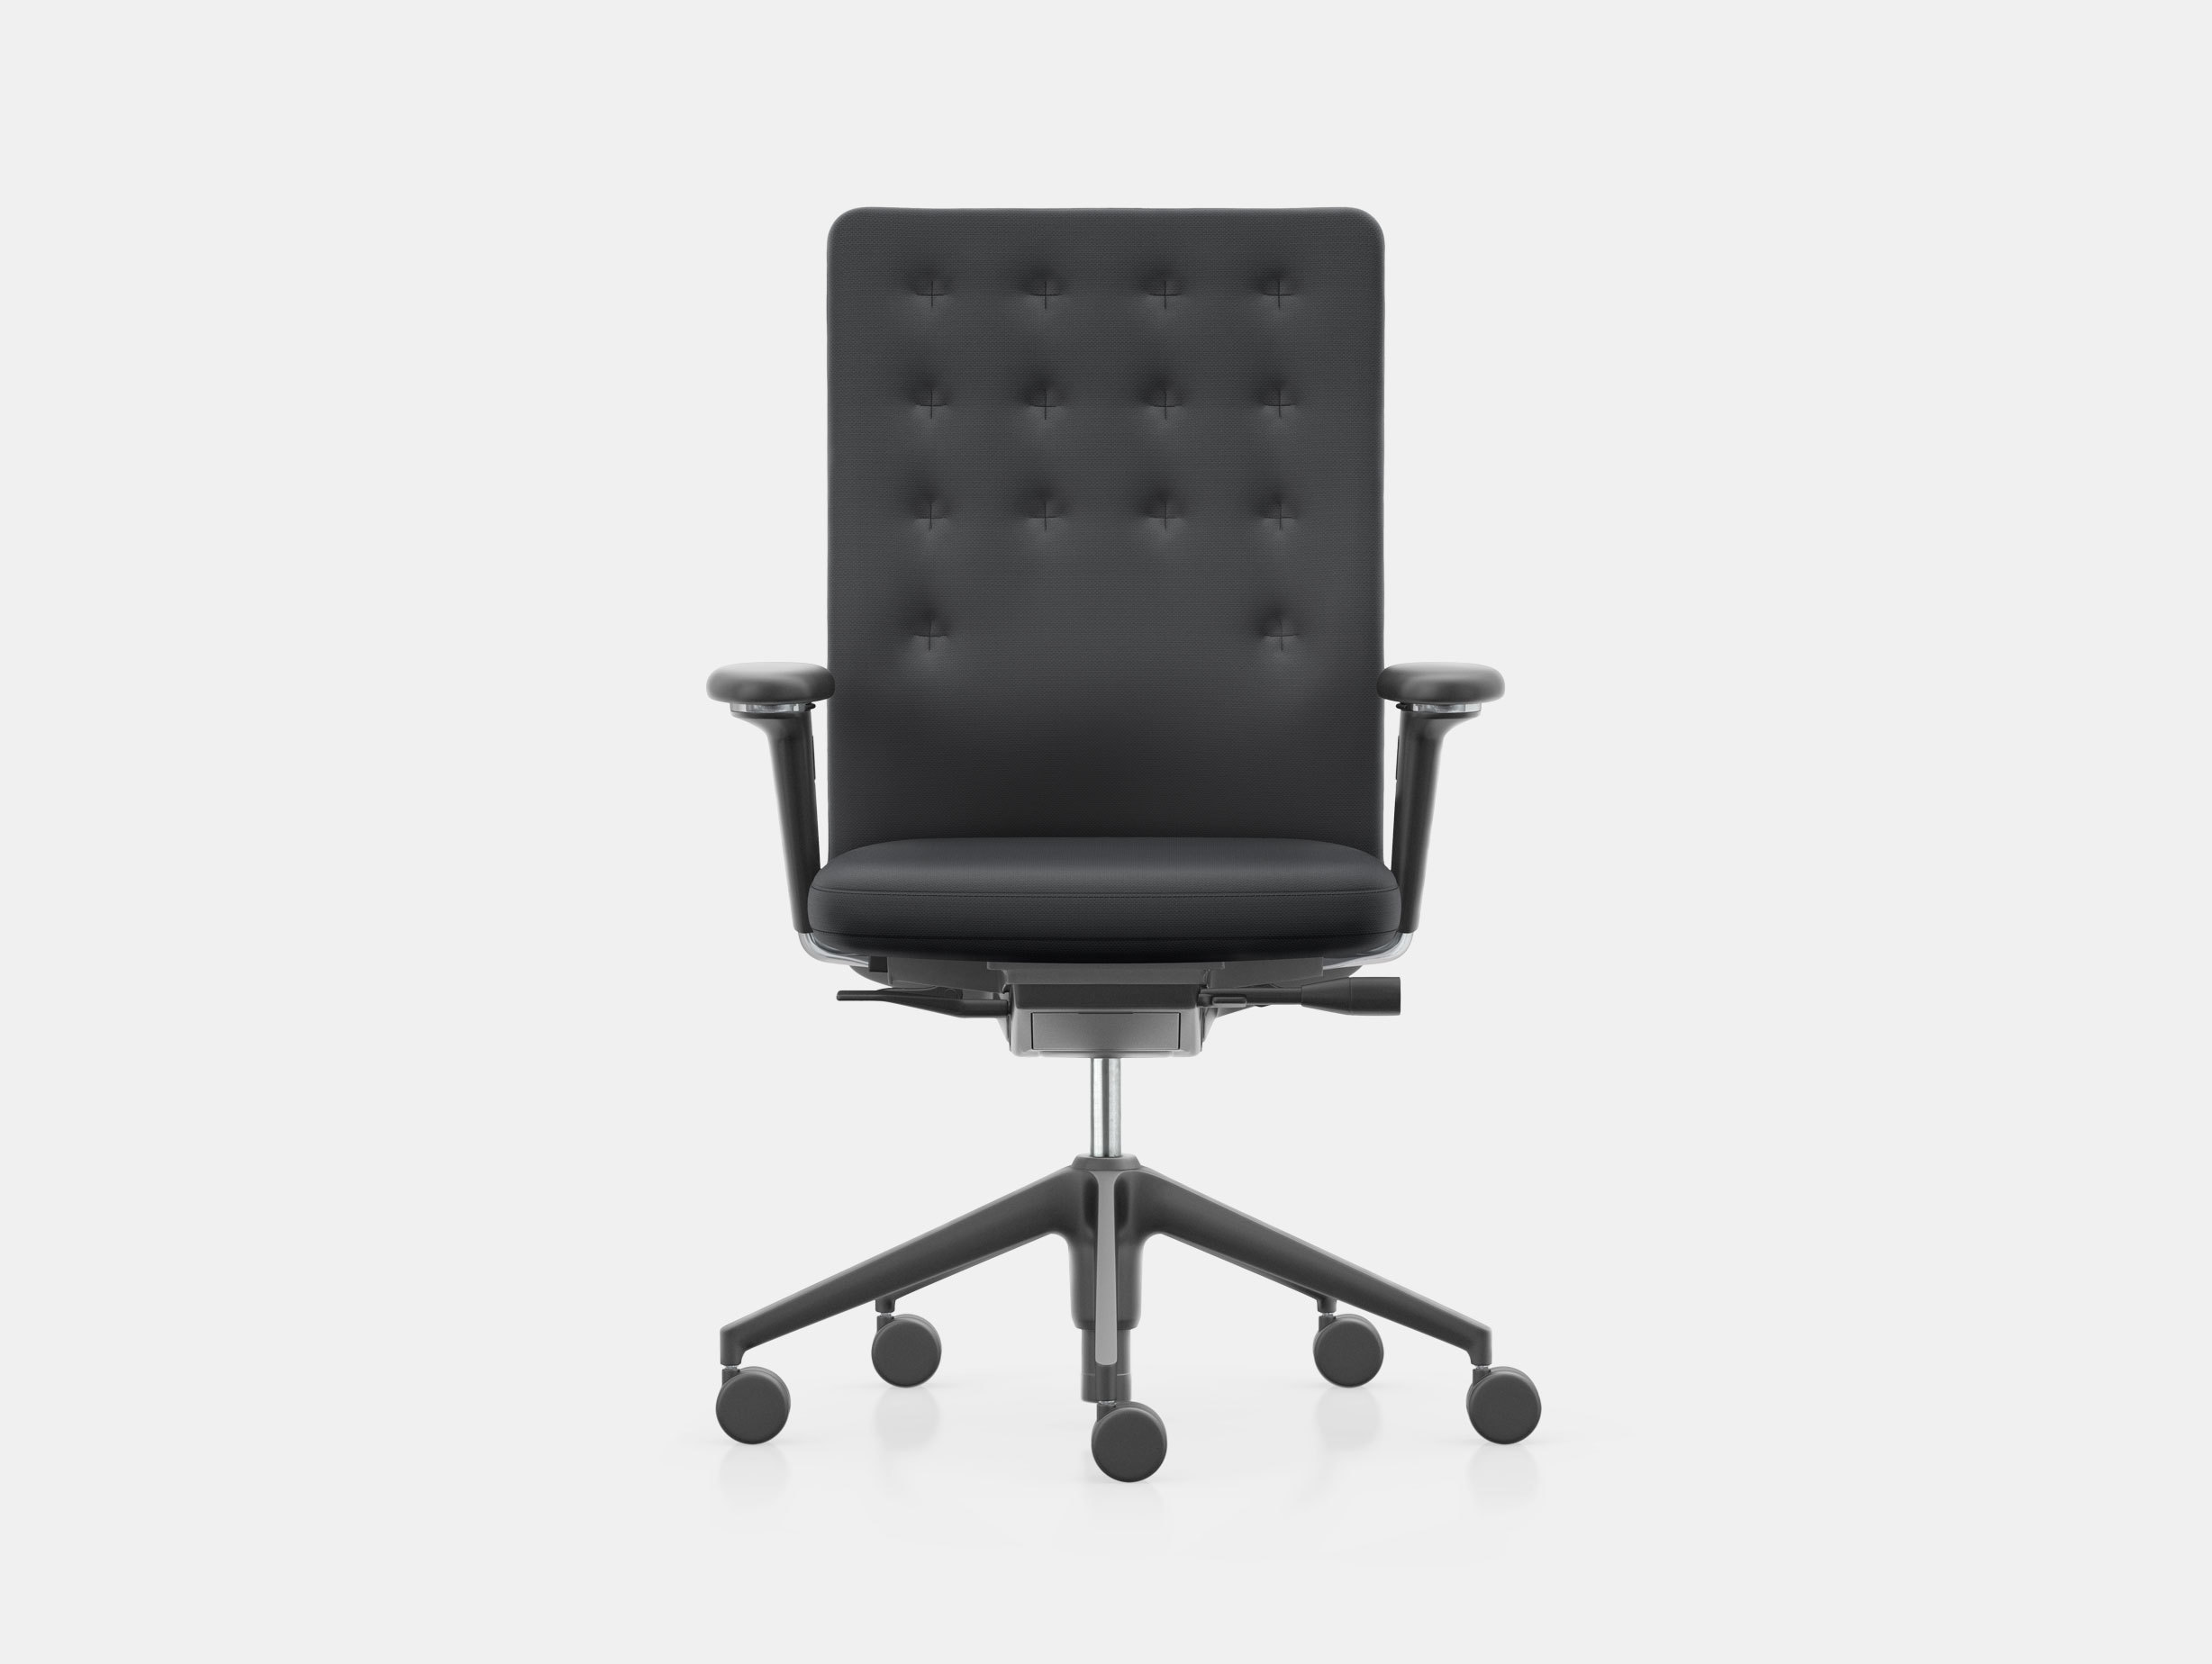 ID Trim Office Chair image 3